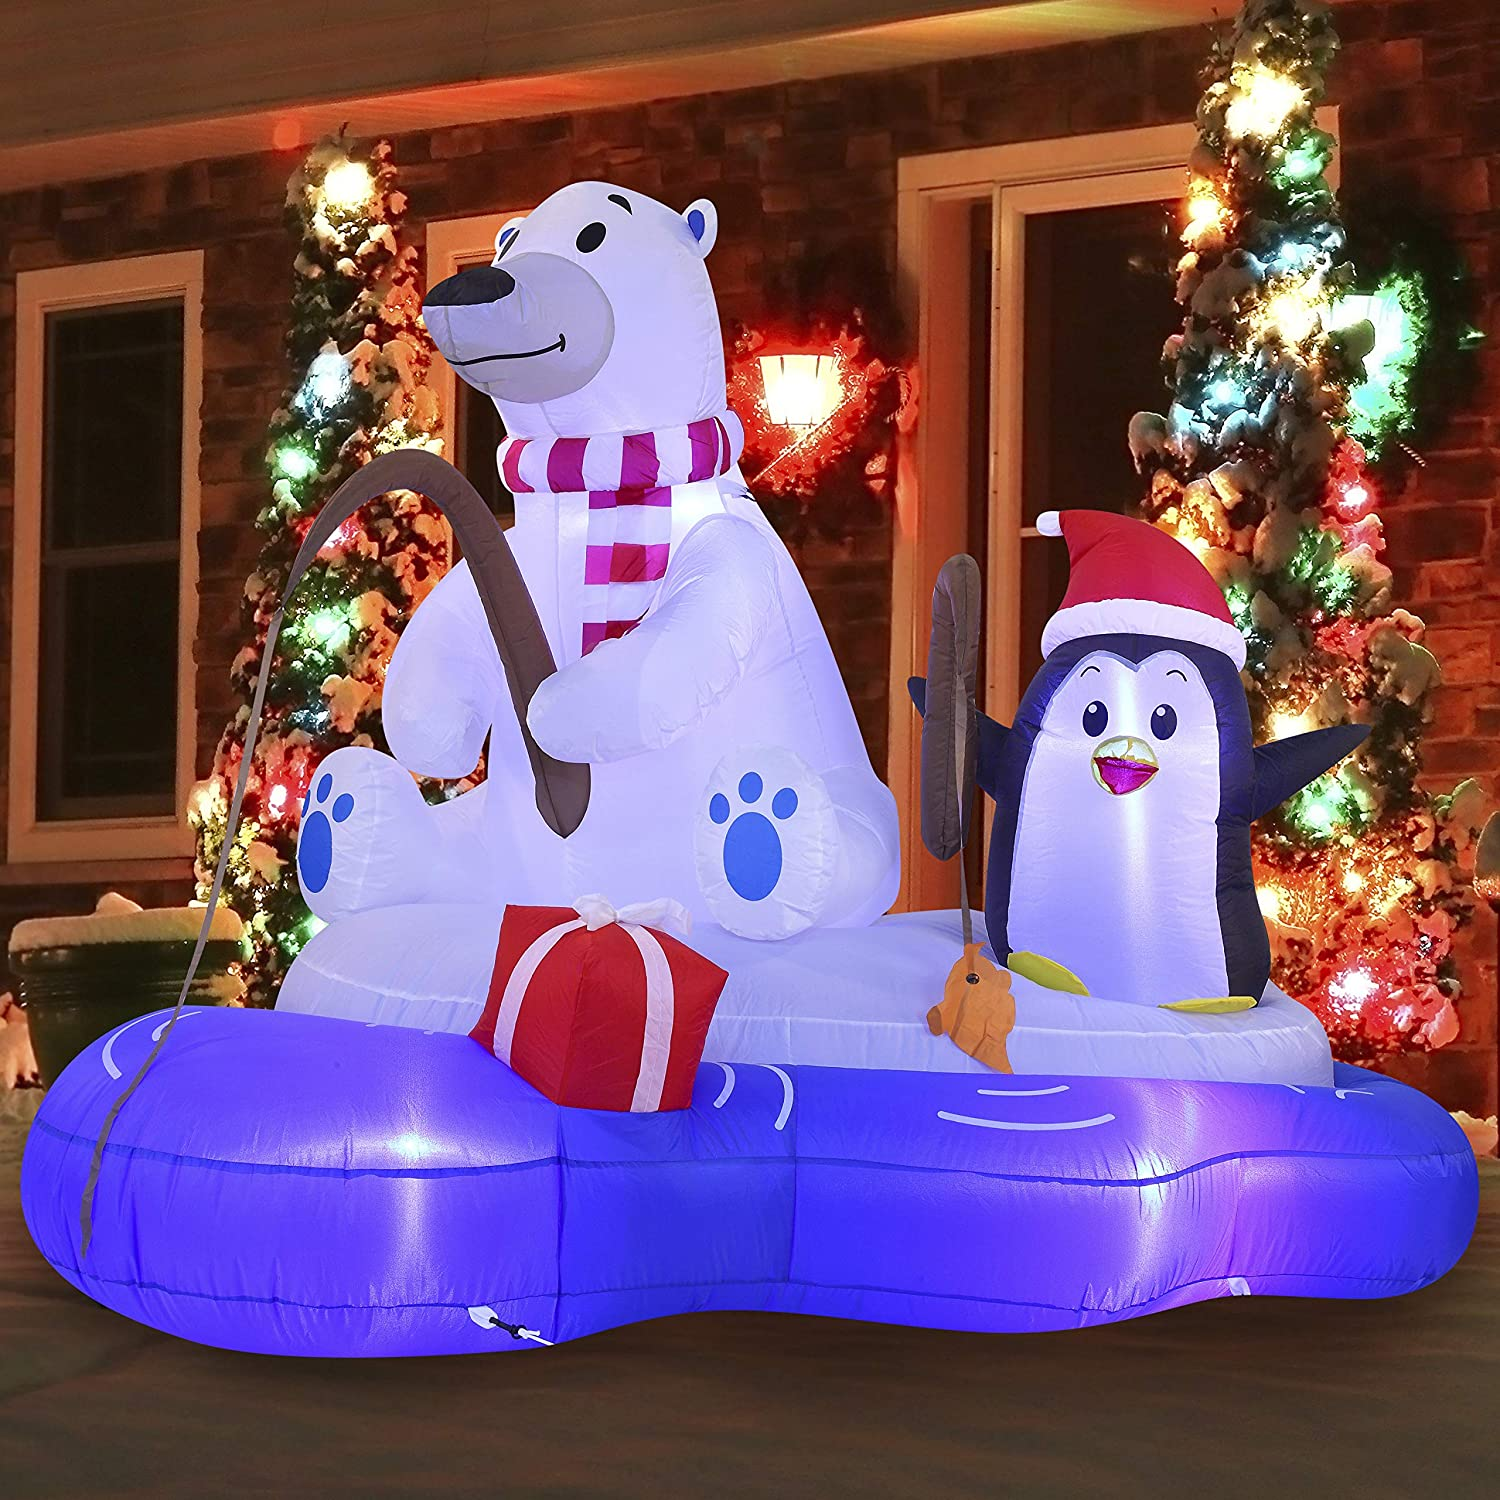 Joiedomi Christmas Inflatable Polar Bear Fishing with Penguin6 ft with Built-in LEDs Blow Up Inflatables for Christmas Party Indoor, Outdoor, Yard, Garden, Lawn Décor, Holiday Season Decorations